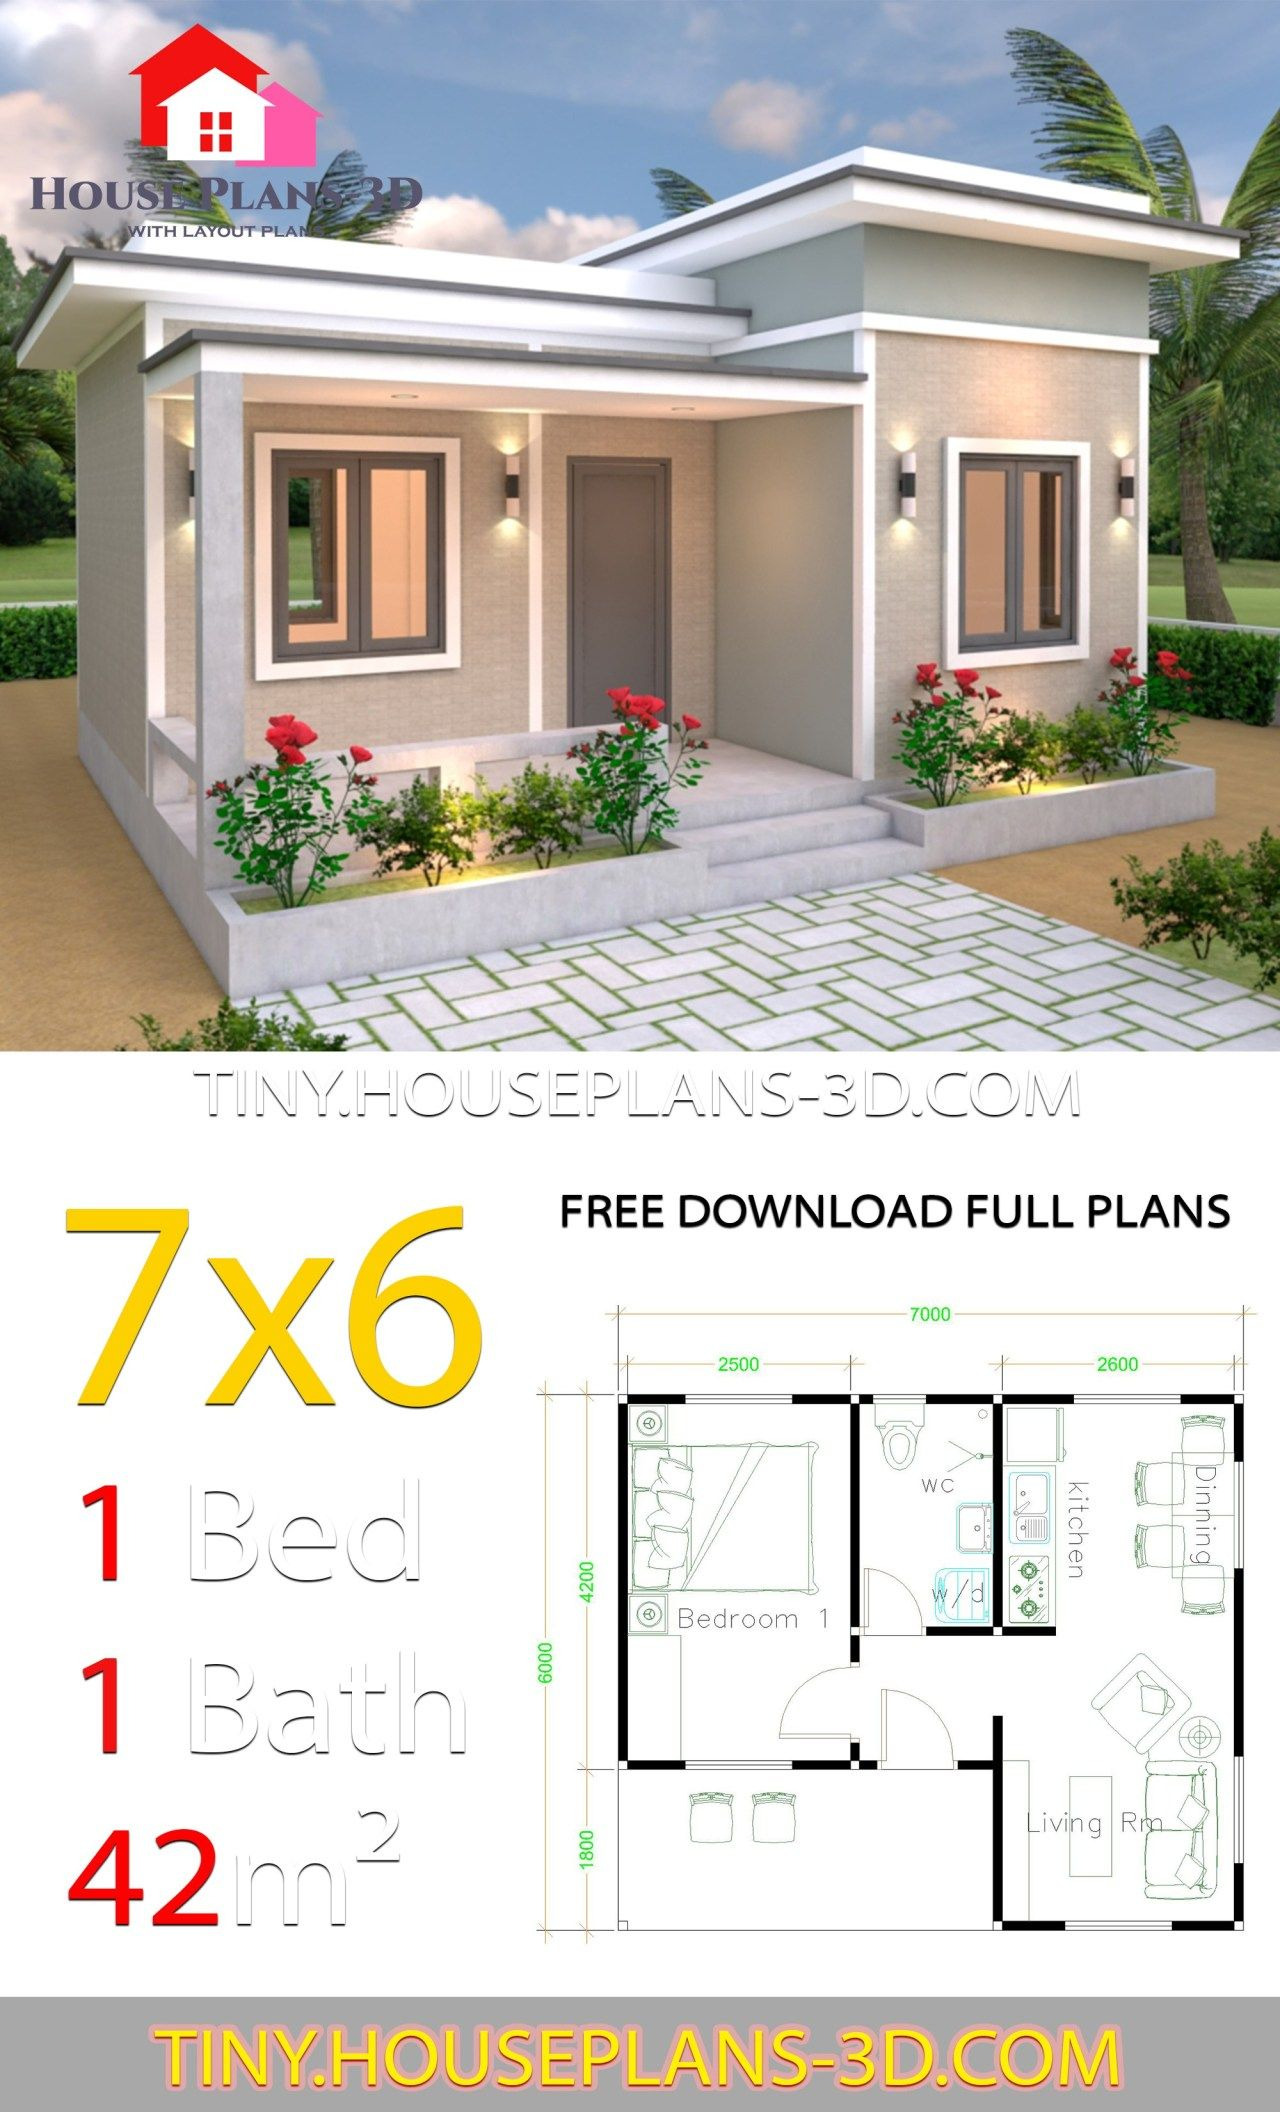 One Bedroom Guest House Plans Elegant 7x6 with E Bedroom Flat Roof